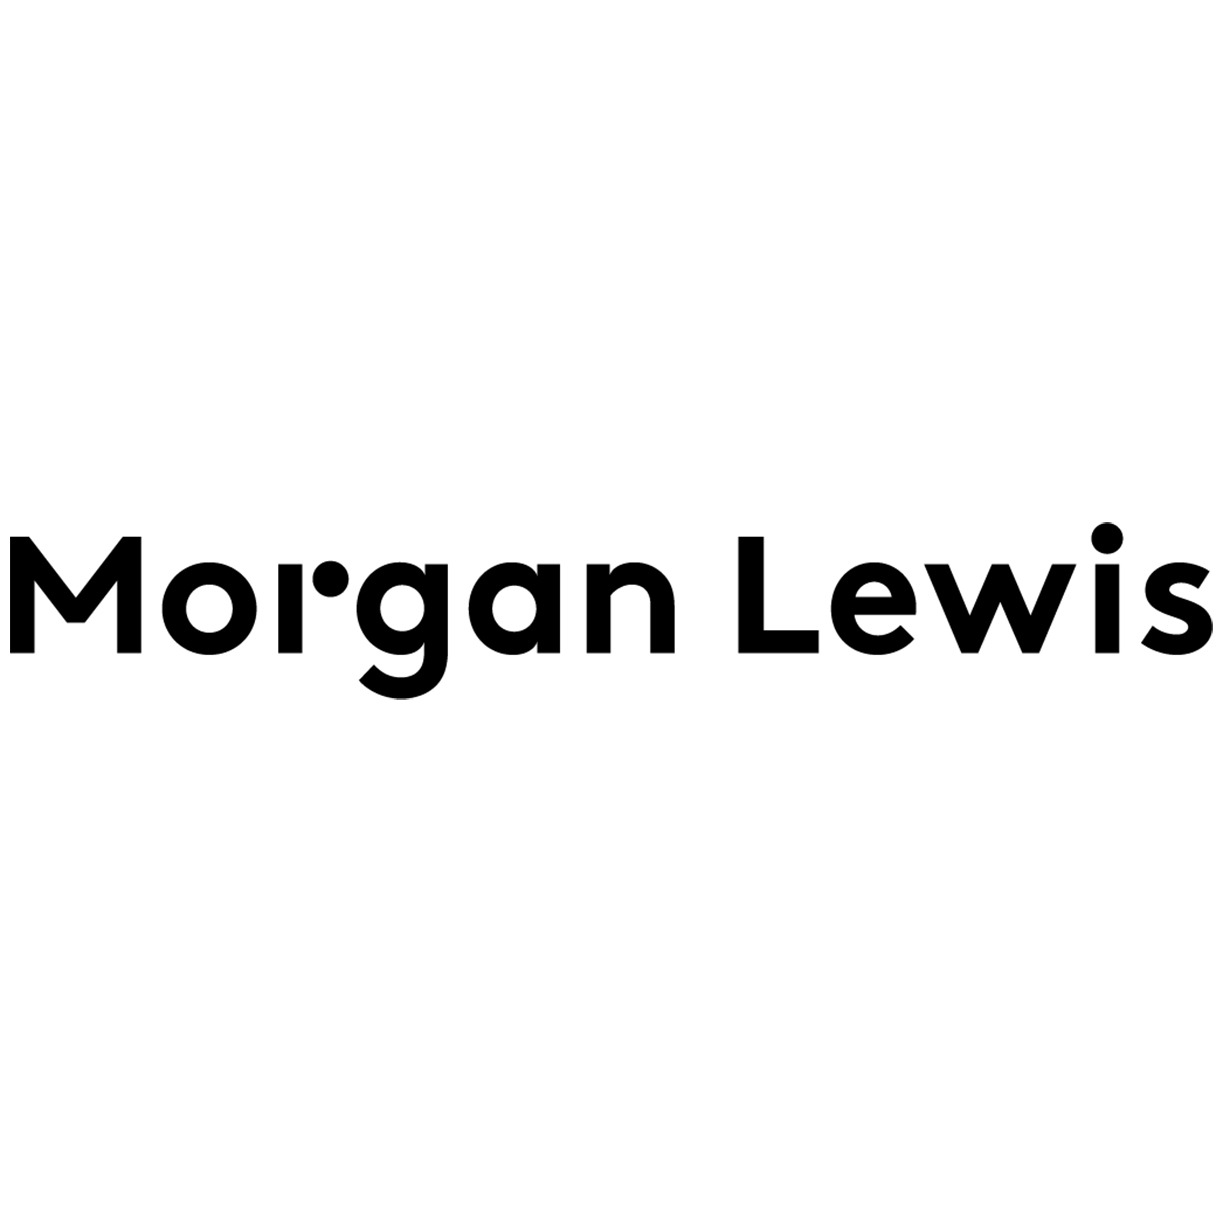 the Morgan Lewis logo.